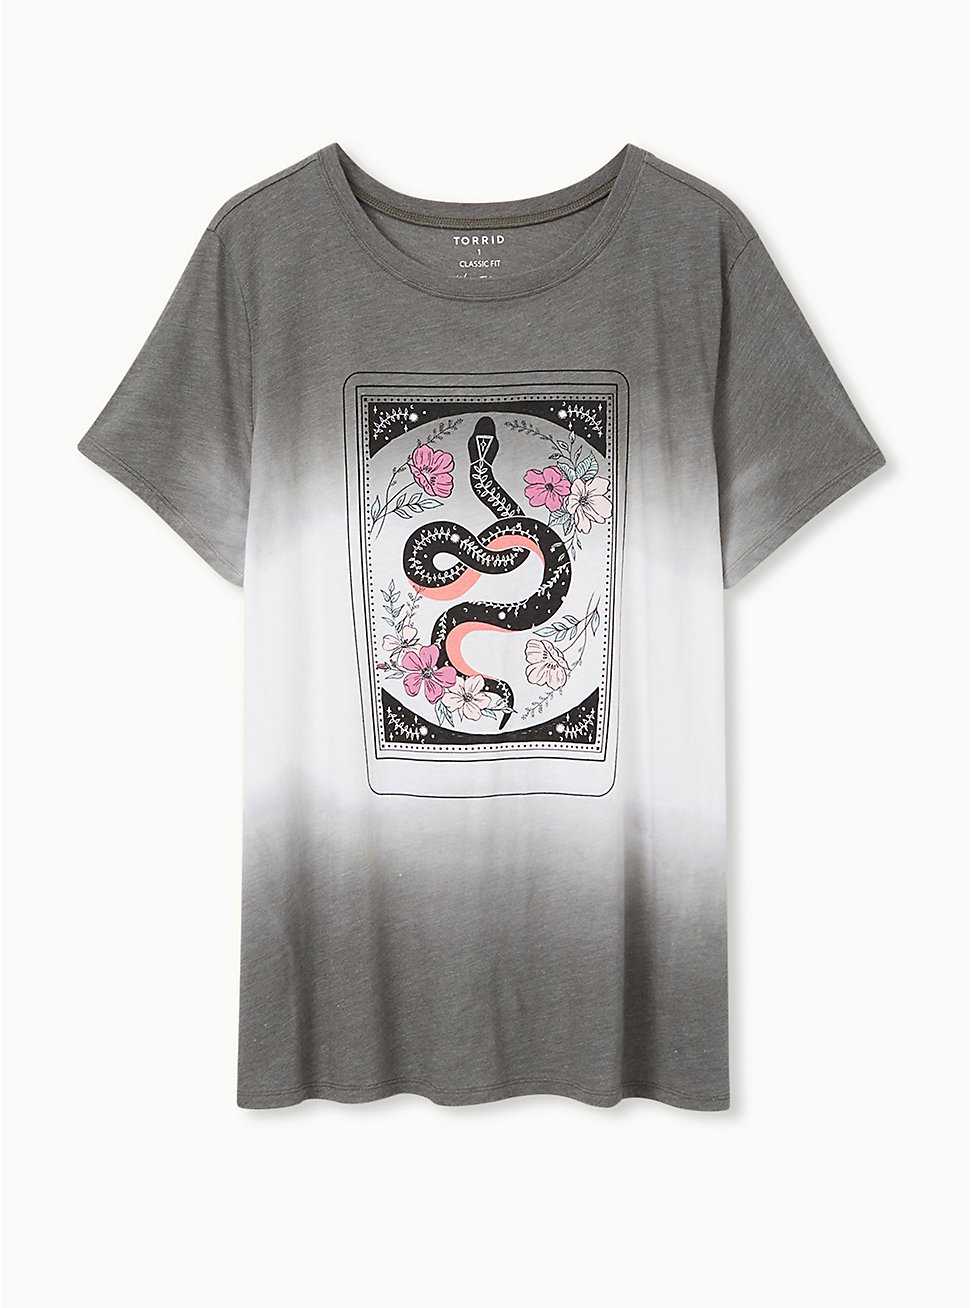 Plus Size Snake Card Slim Fit Crew Tee - Triblend Dip-Dye Grey , DEEP DEPTHS, hi-res